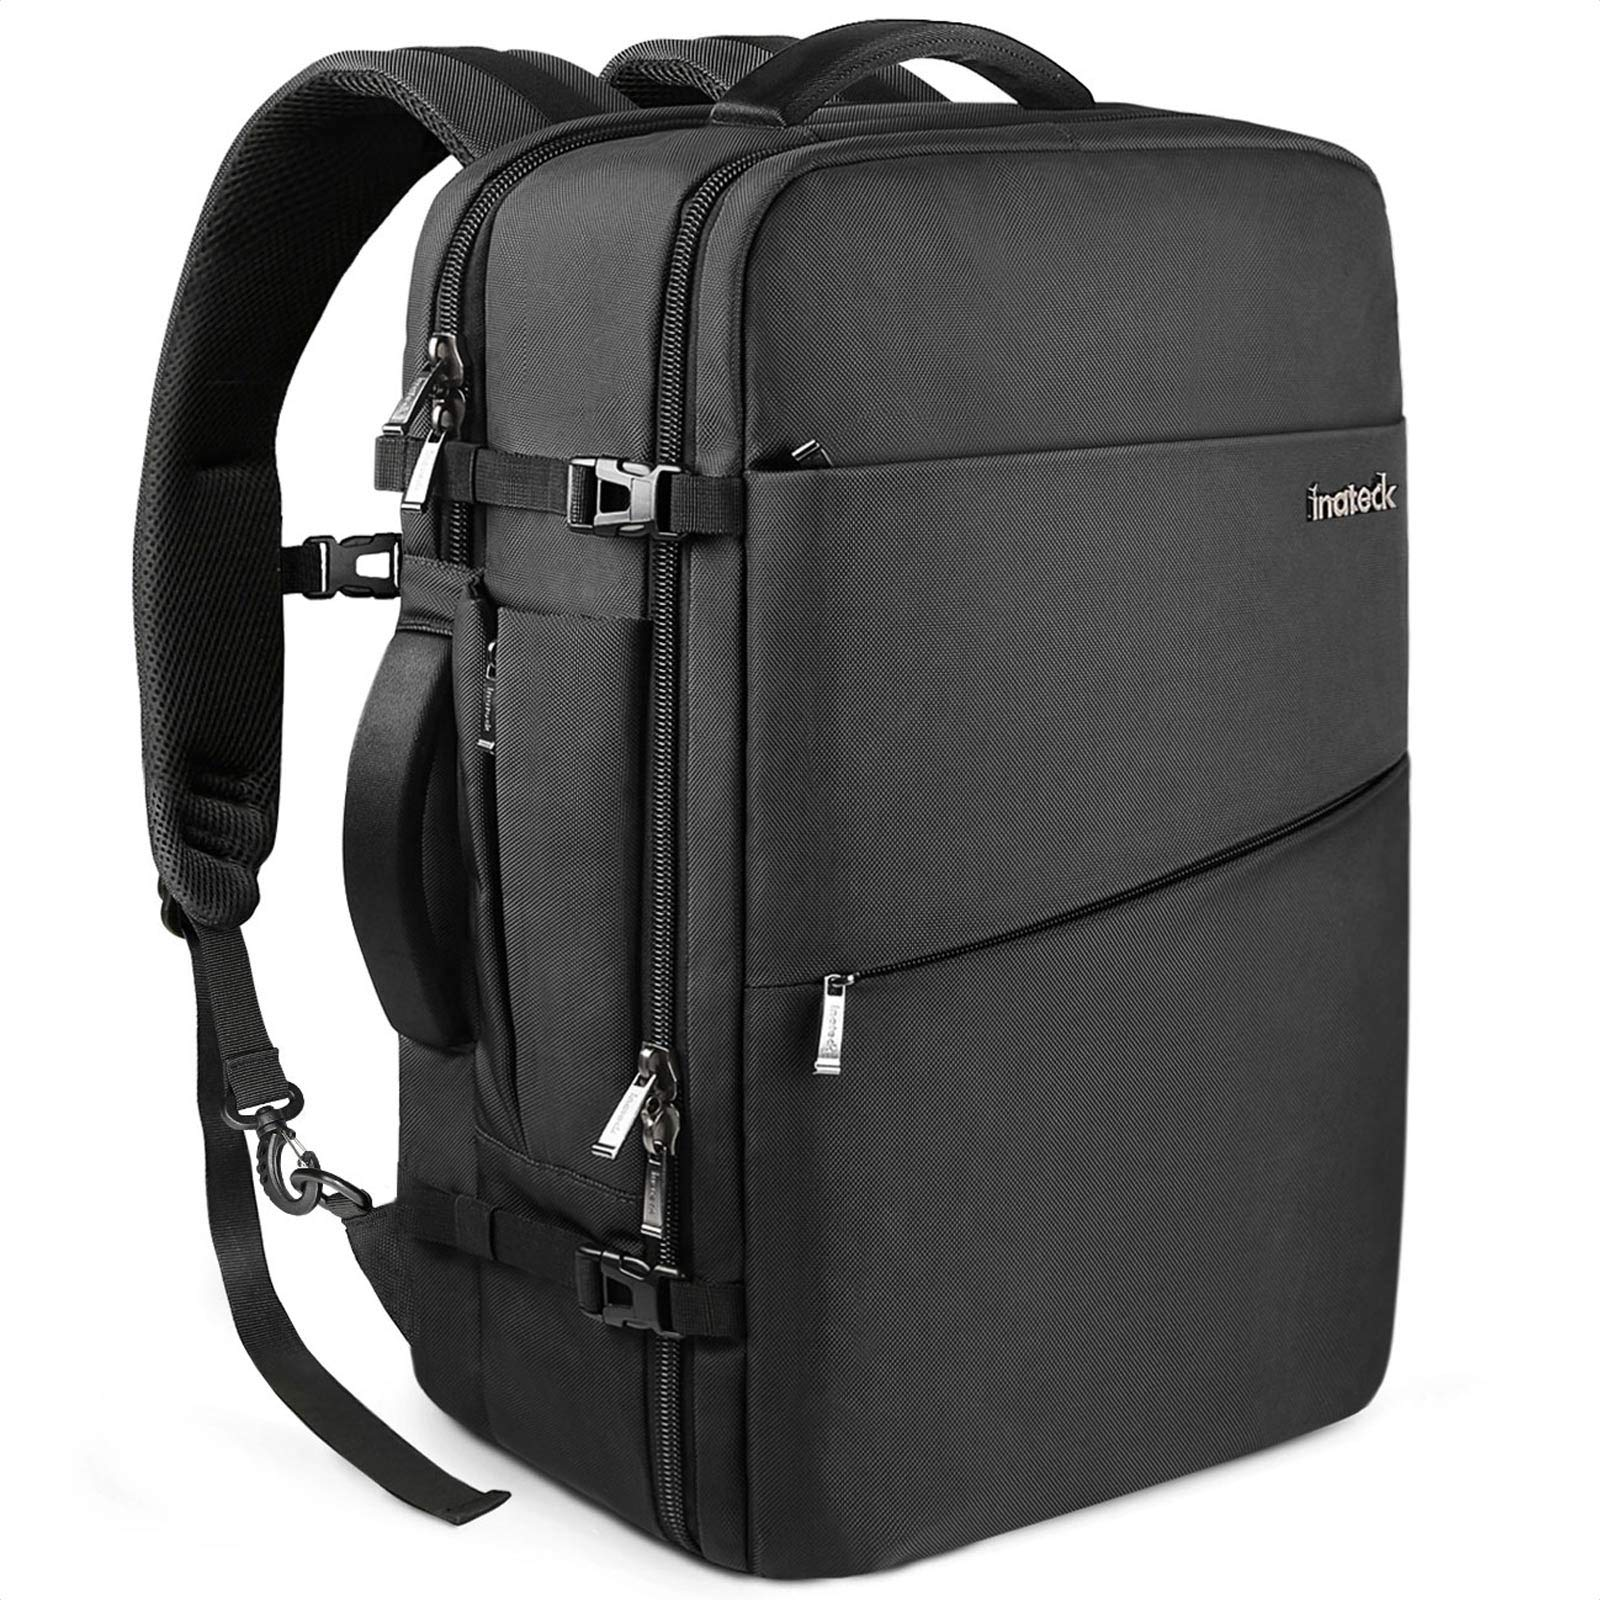 Inateck Travel Carry On Business Luggage Backpack, Anti-theft Rucksack 30L Flight Approved Bag with Rain Cover Fits 15.6'' Laptop for Men Women, Black